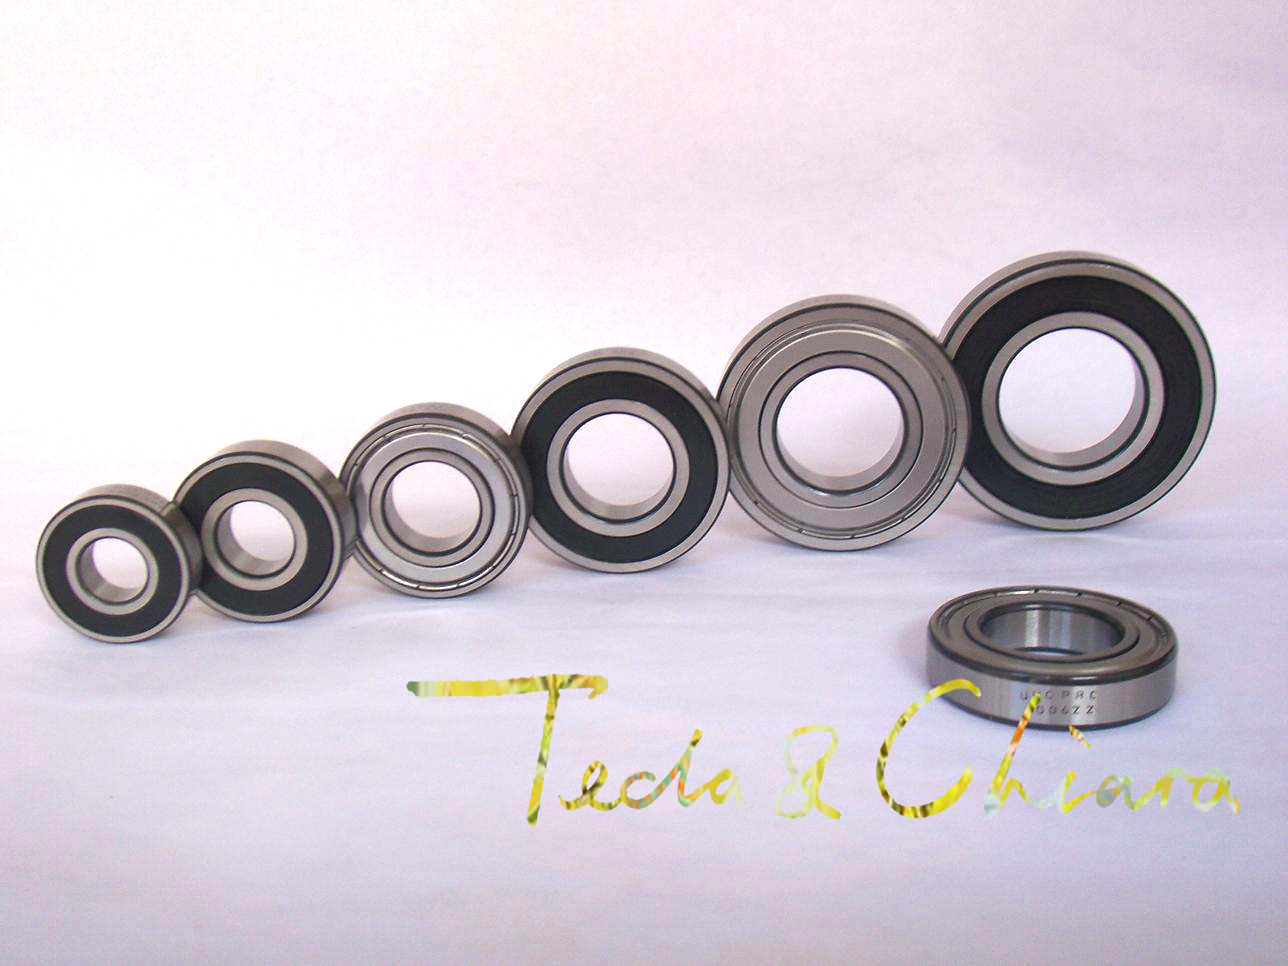 10pcs-1lot-mr93-mr93zz-mr93rs-mr93-2z-mr93z-mr93-2rs-zz-rs-rz-2rz-deep-groove-ball-bearings-3-x-9-x-4mm